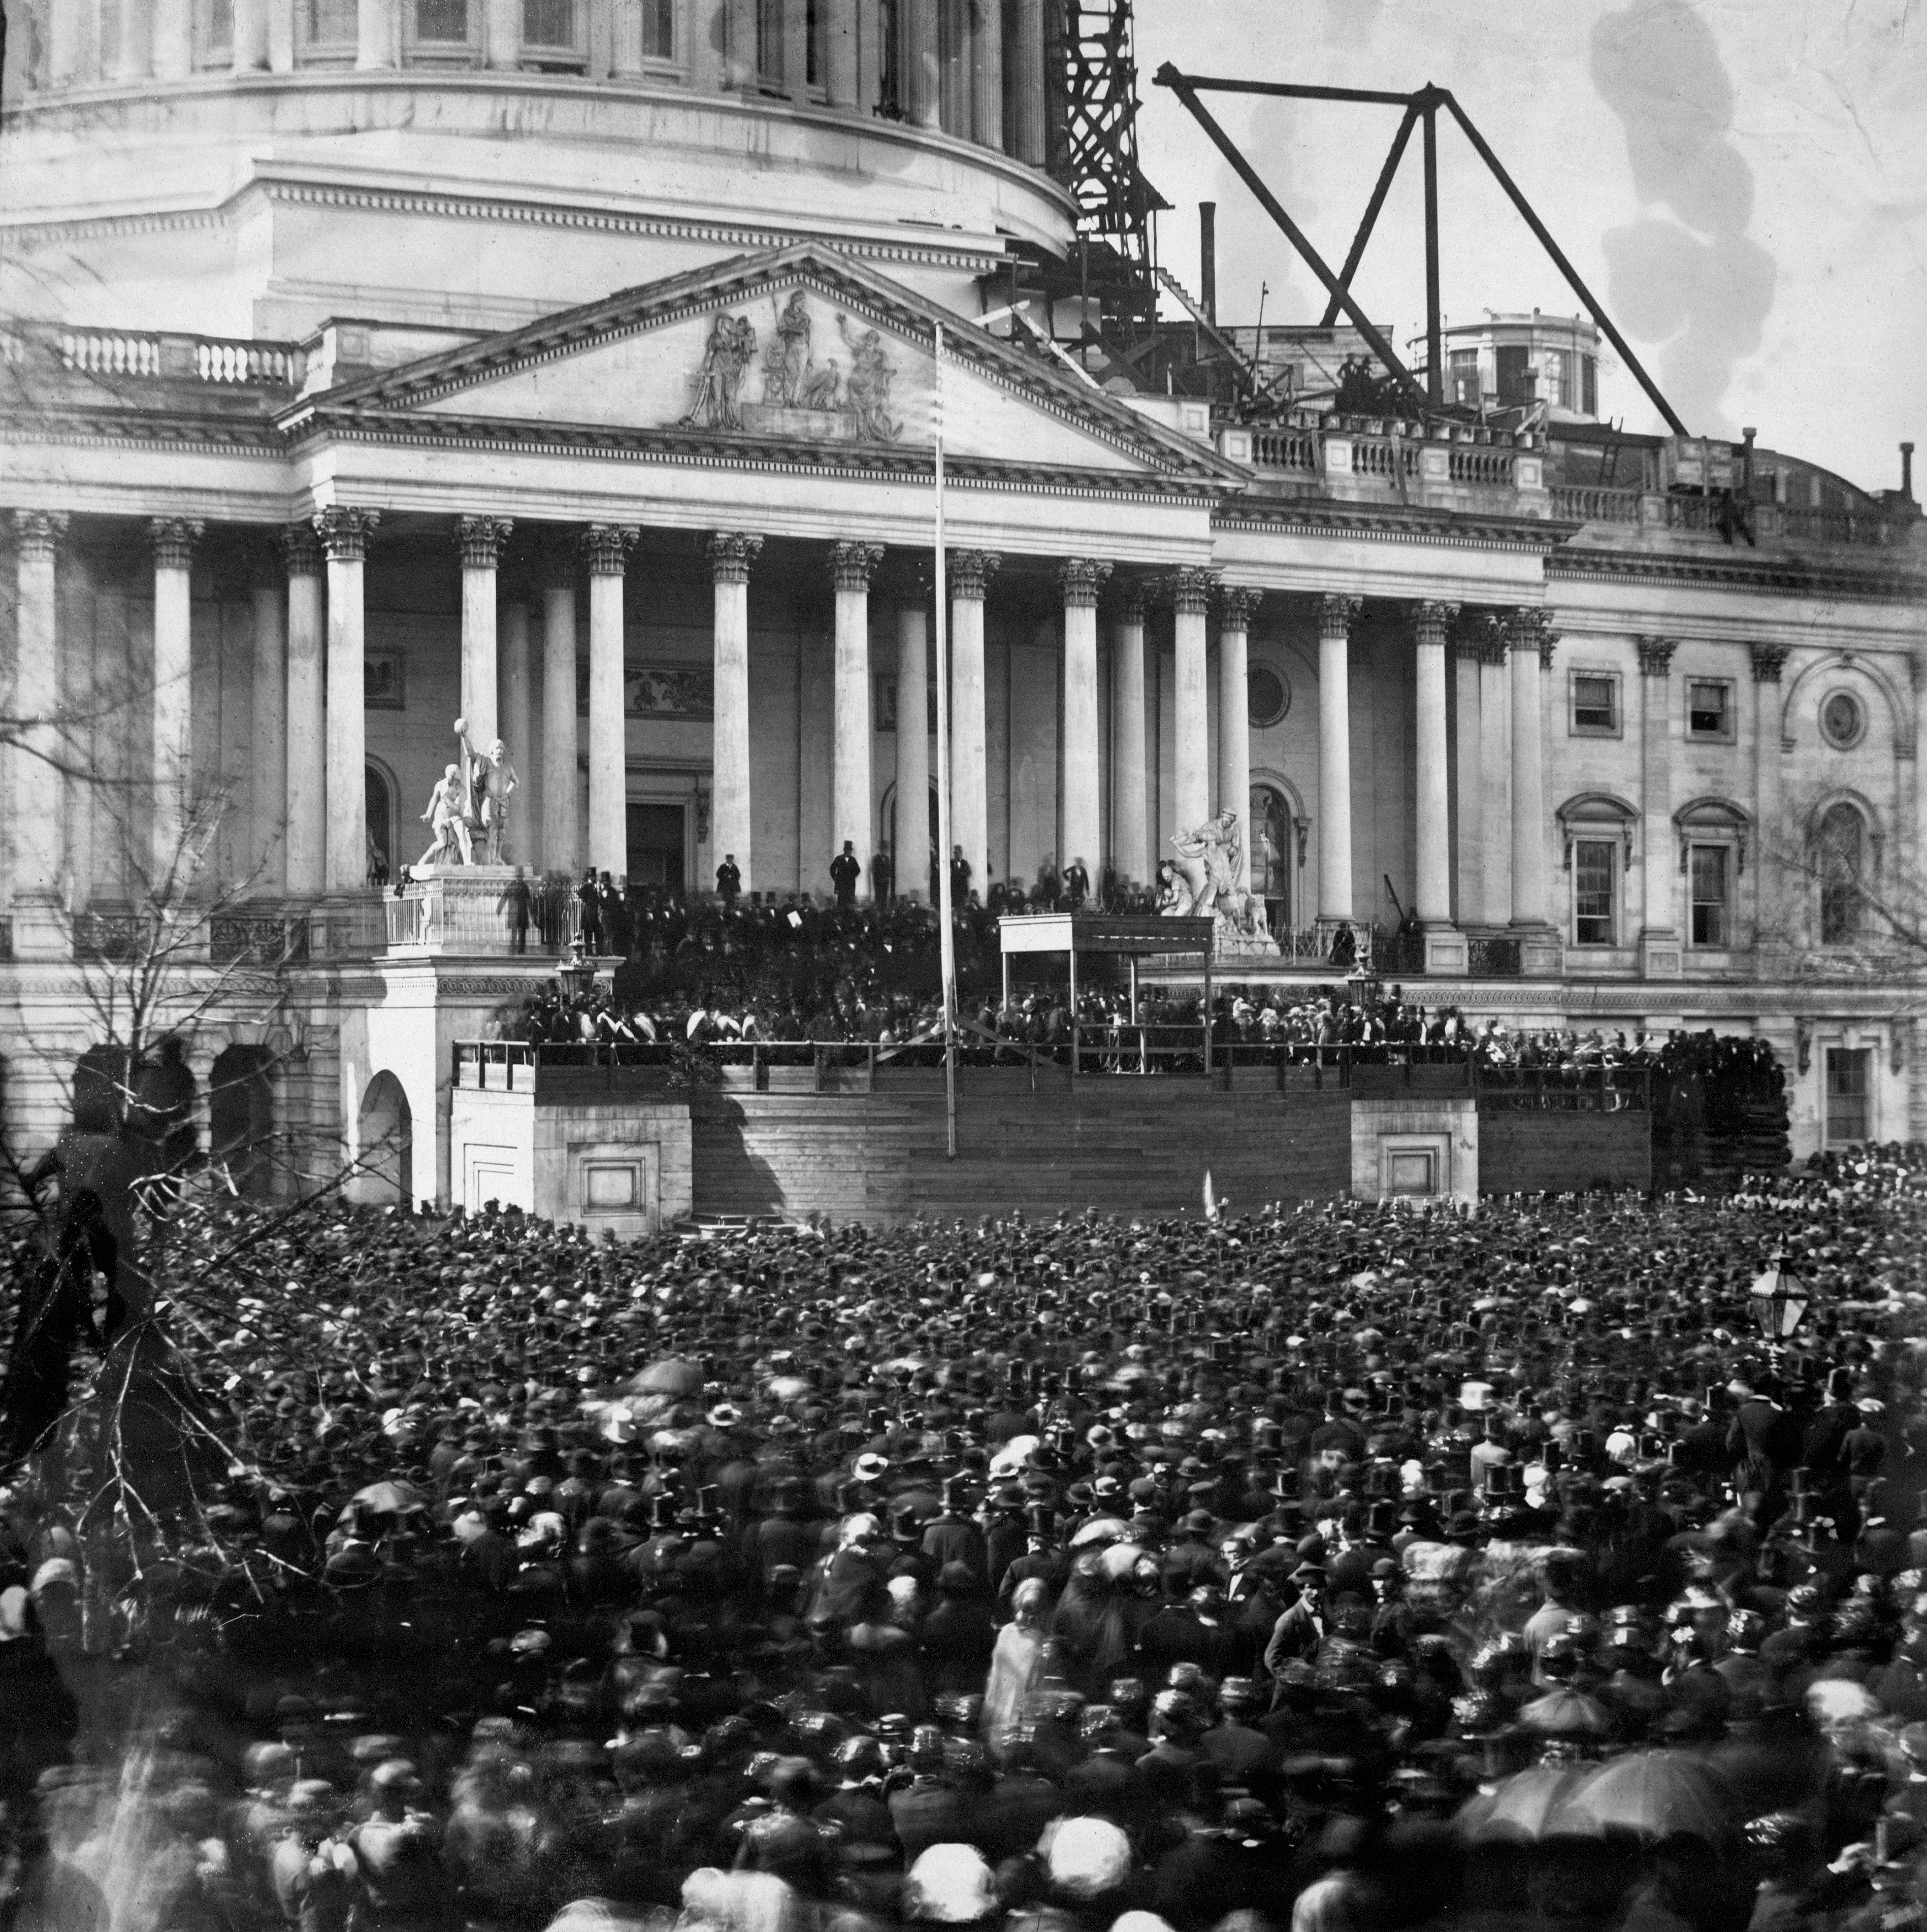 First Inaguration in 1861, Washington D.C.